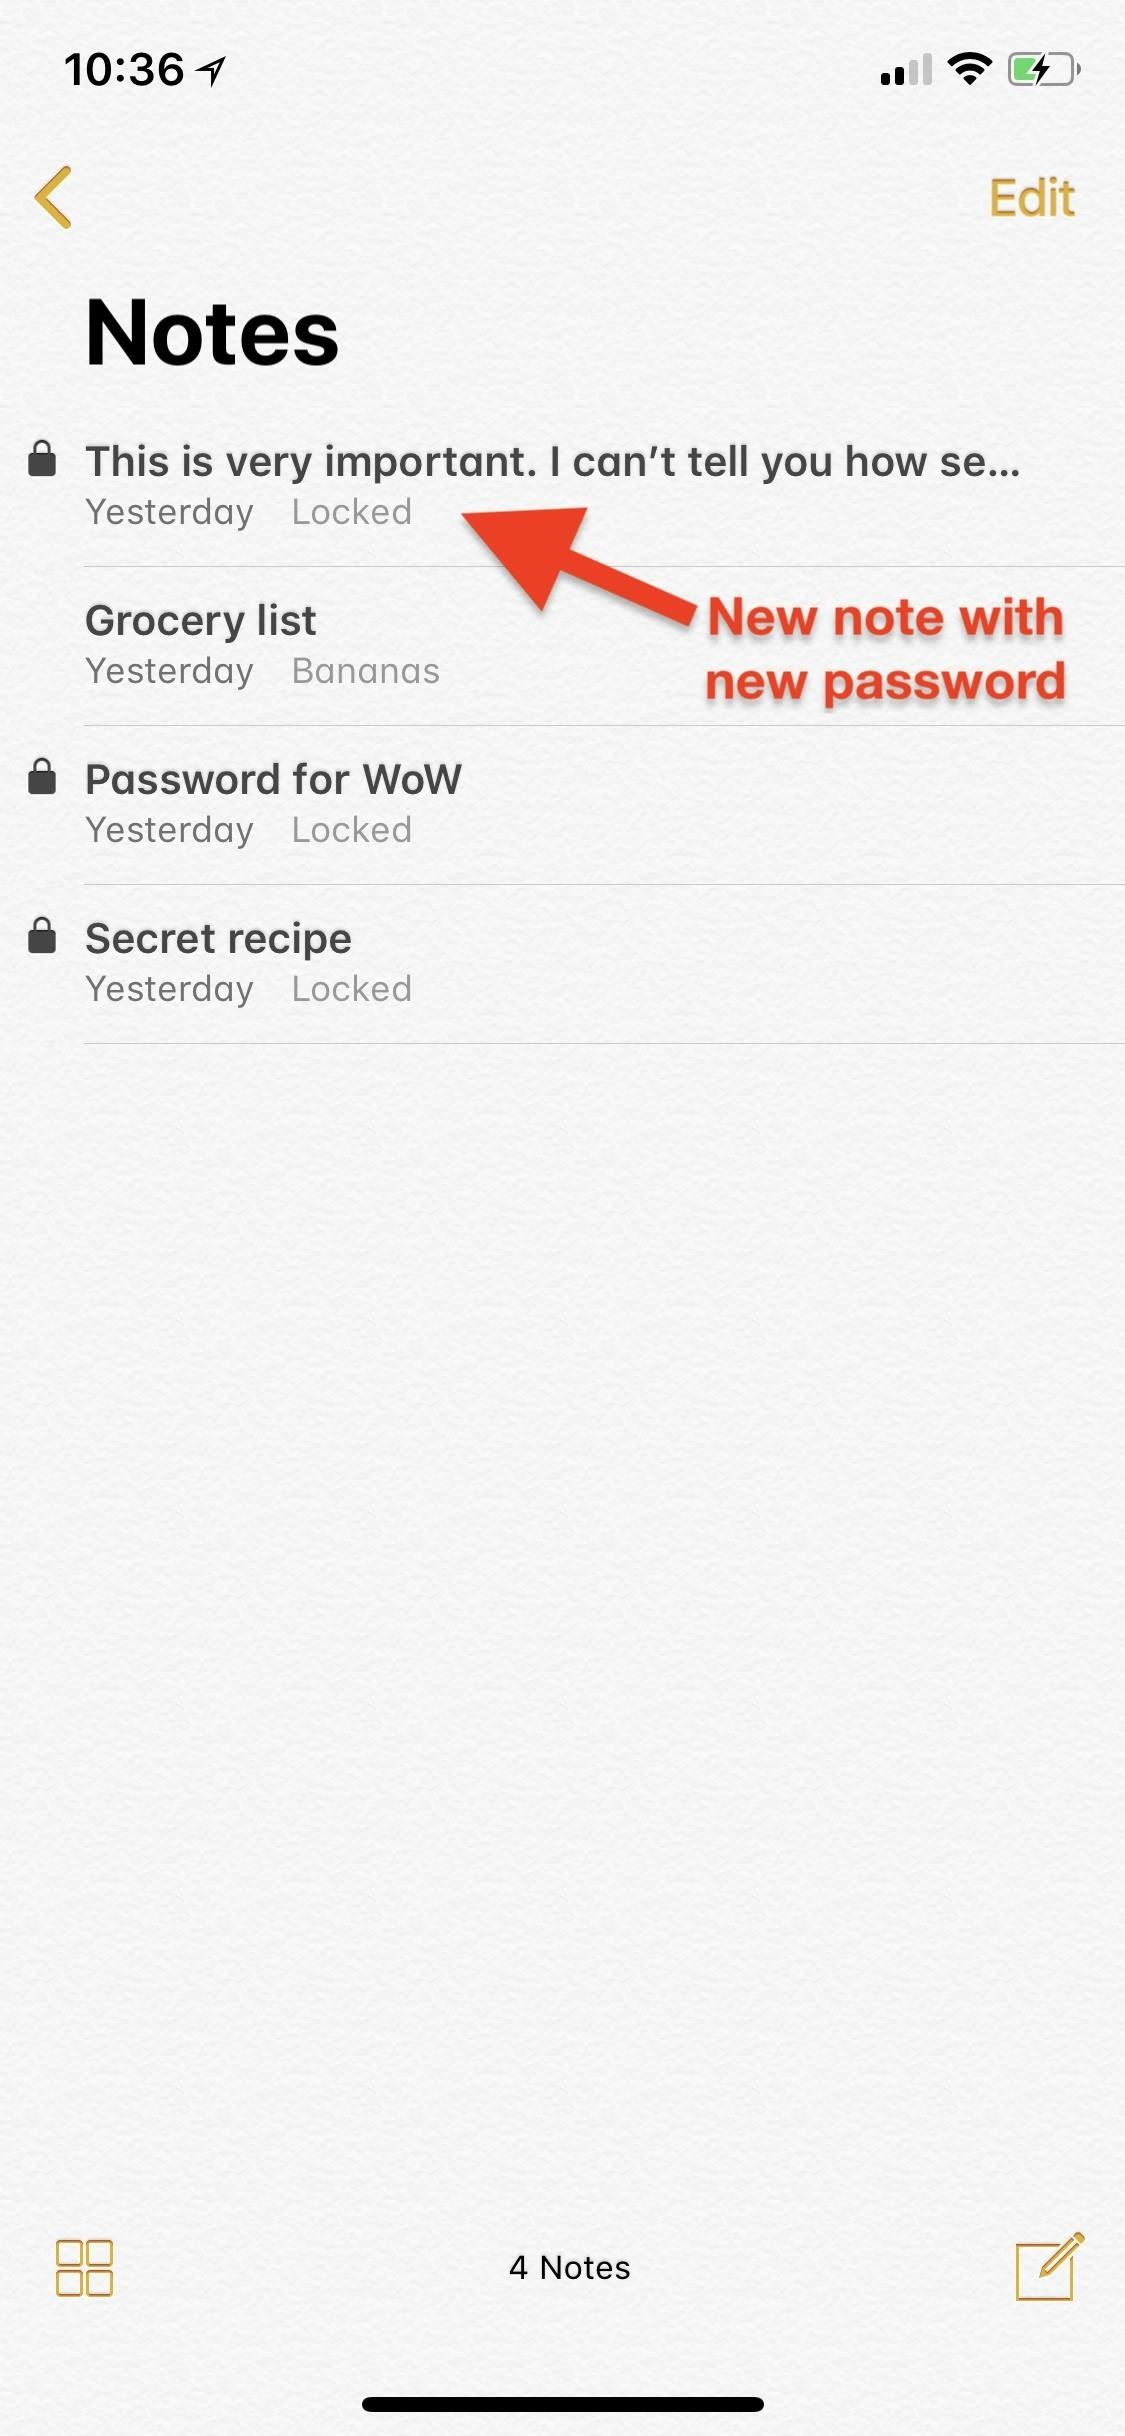 Notes 101: How to Lock Notes with Face ID or Touch ID (& Password Protection)